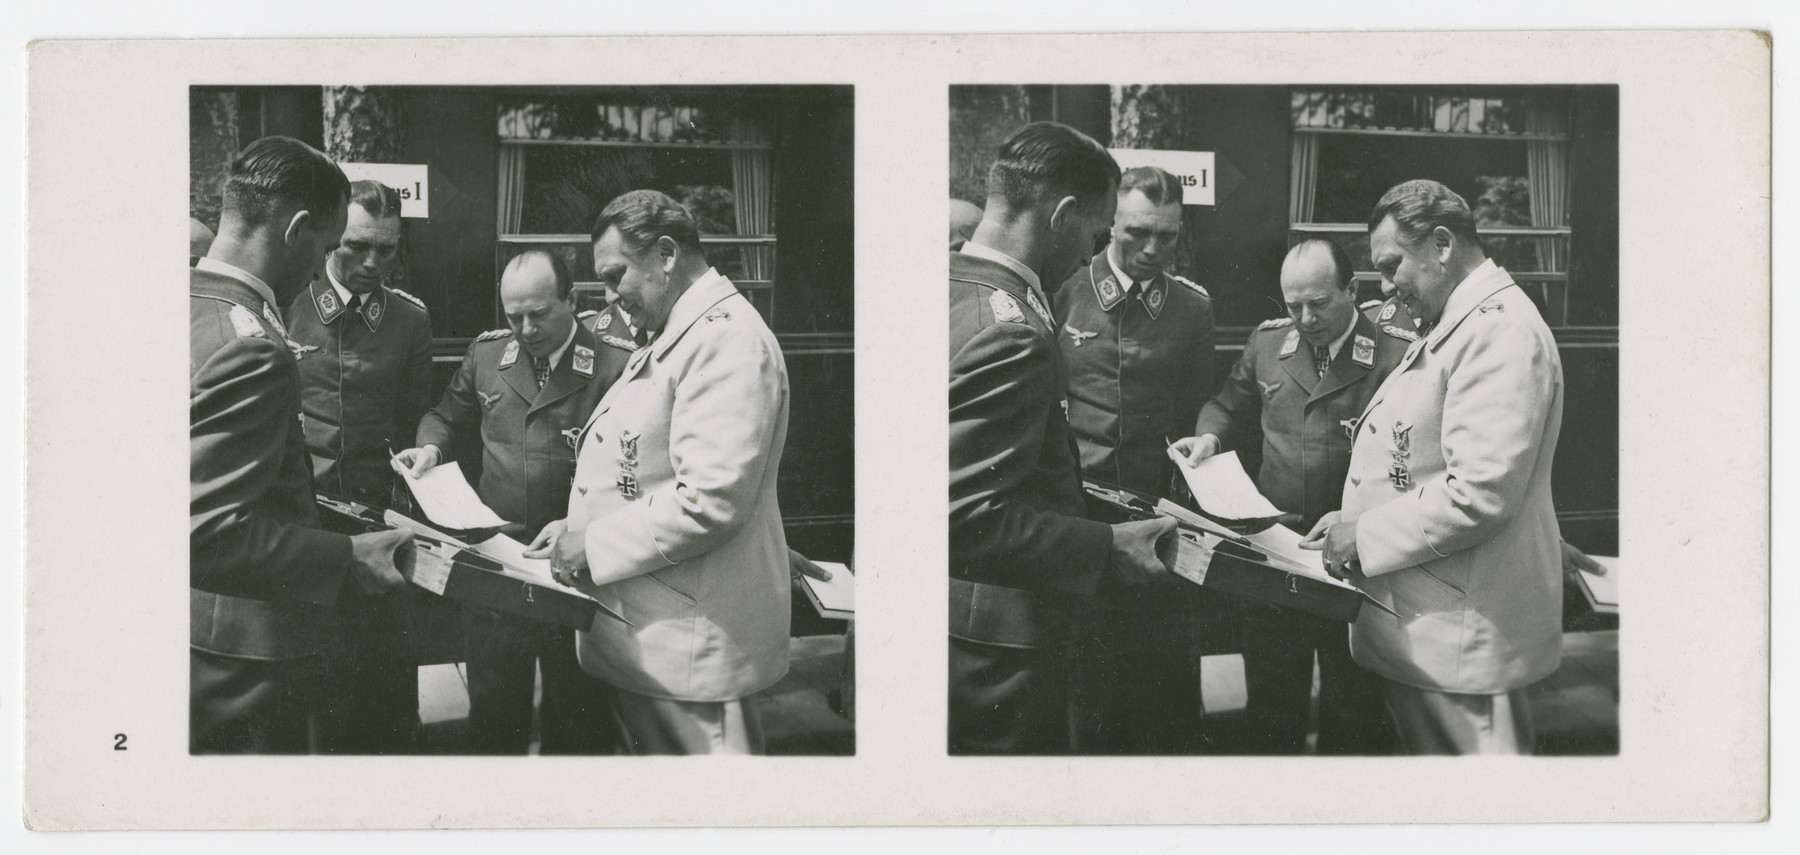 A stereograph of Hermann Goering, Ernst Udet, and other Nazi military officials.   Original caption in German reads:  Der geniale Schöpfer und Oberste Befehlshaber der Luftwaffe, Reichsmarschall Herman Göring, mit Generaloberst Udet